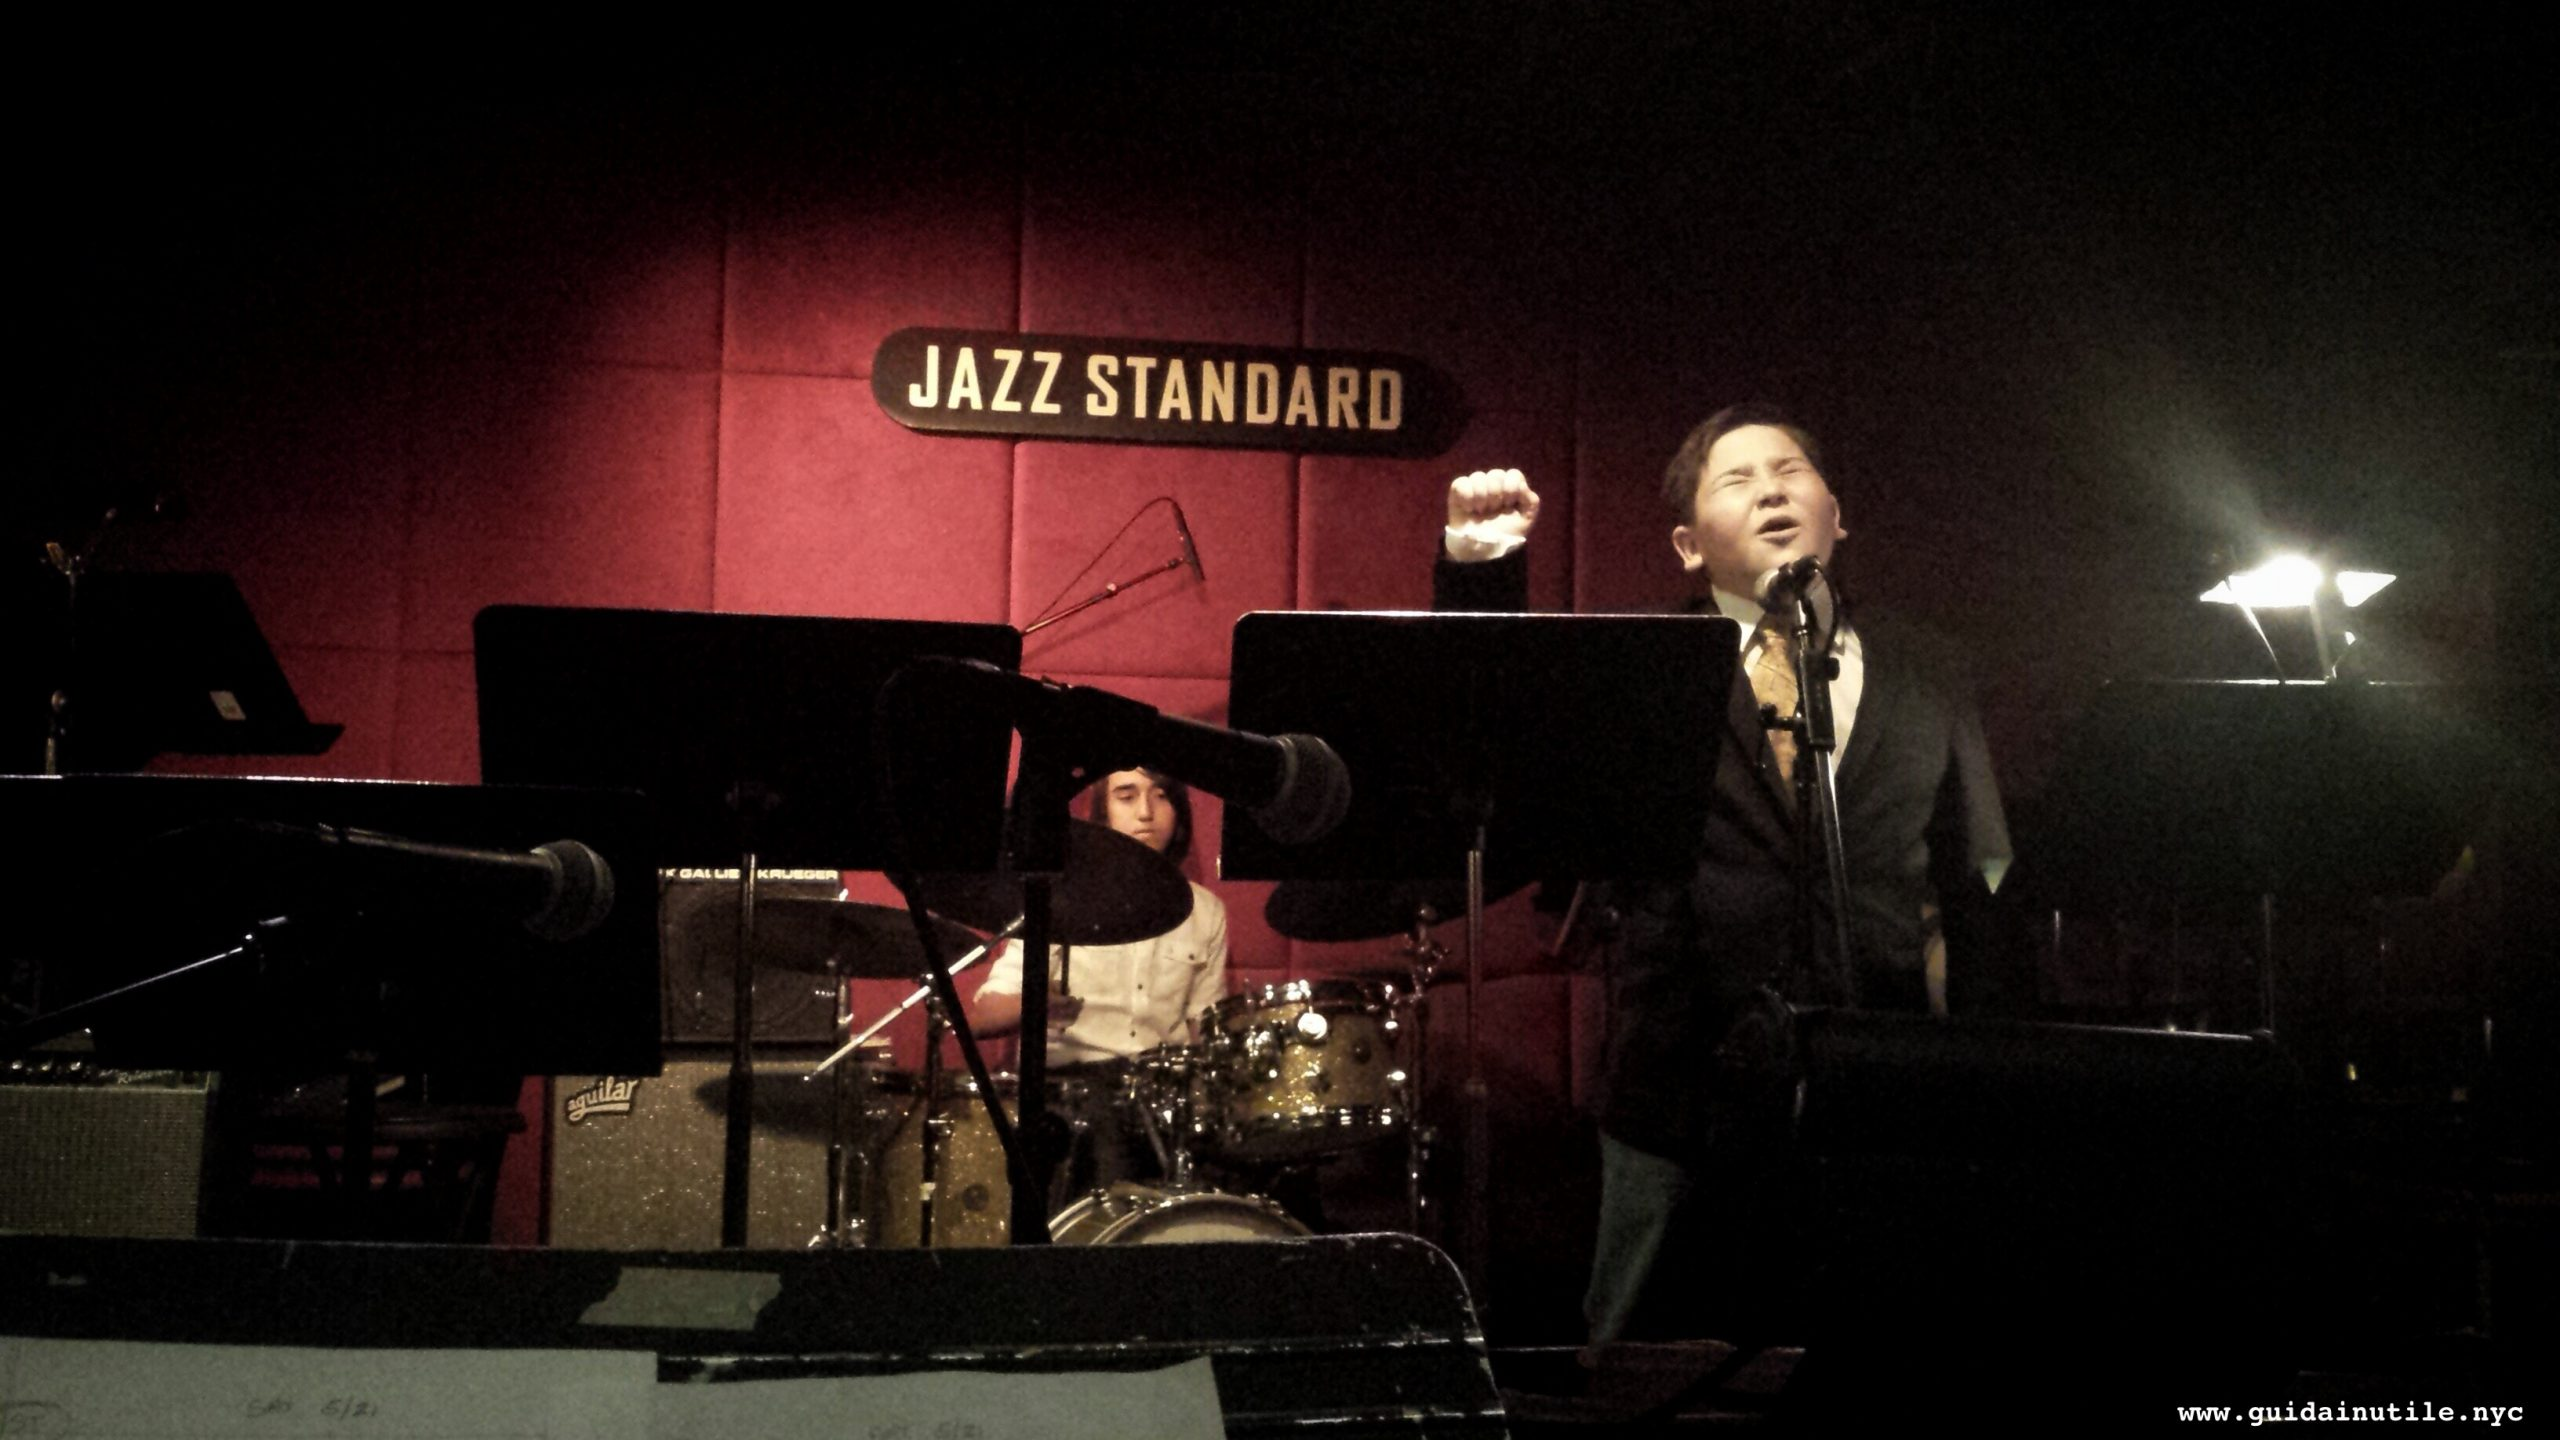 Jazz Standard, crooner, Fly Me To The Moon, Jazz For Kids